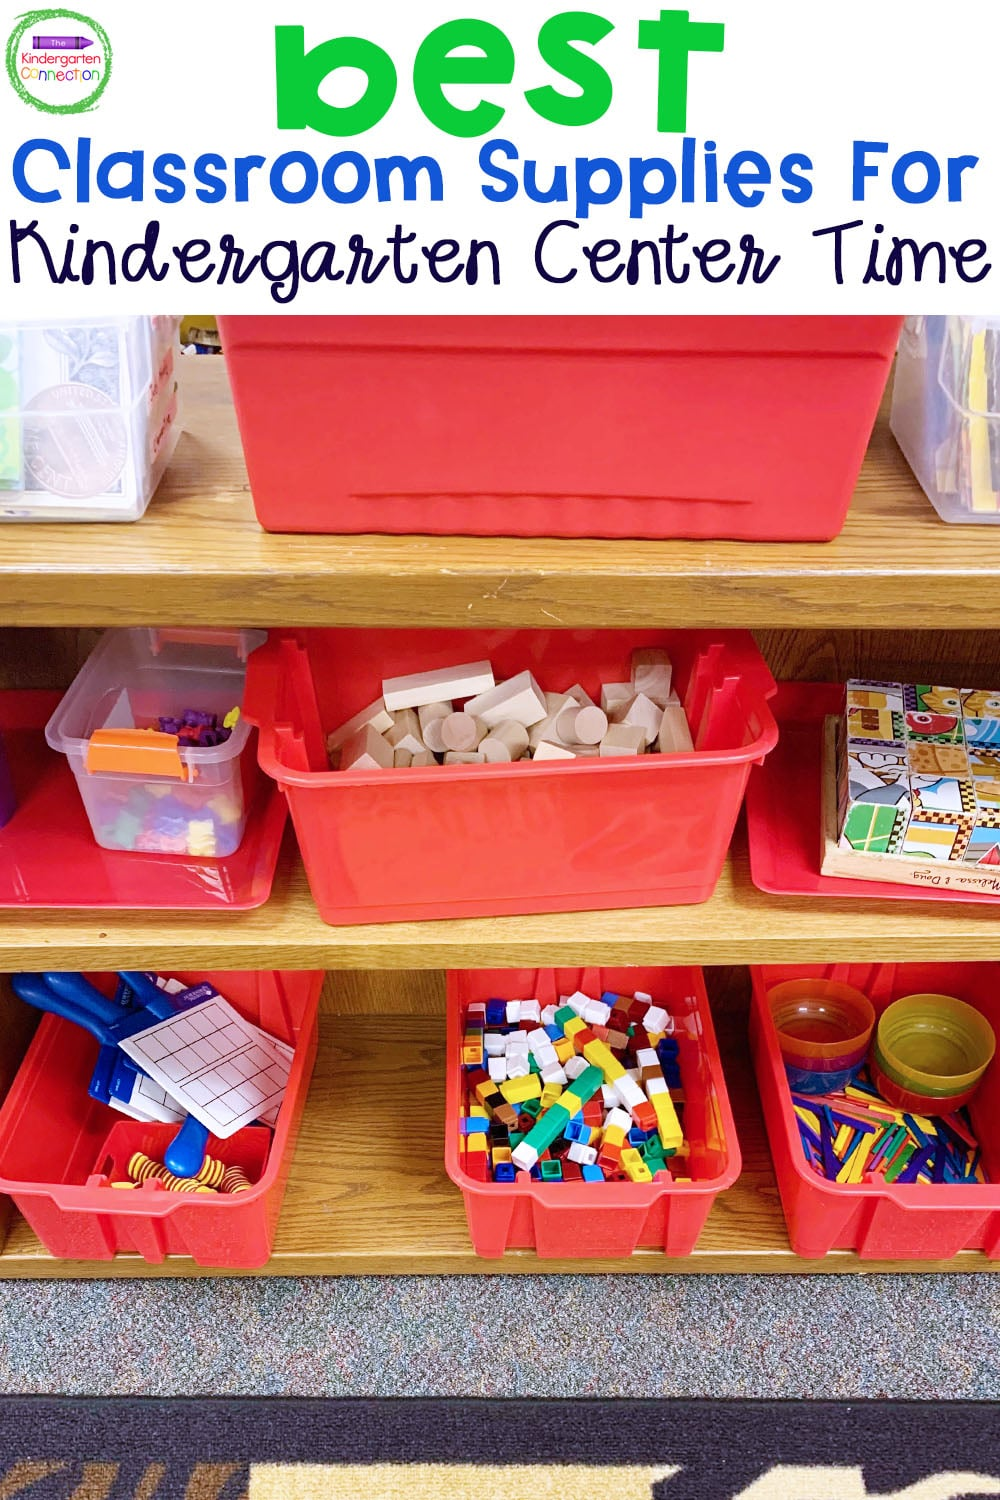 Check out this list of the best classroom supplies for Kindergarten center tIme to help you find success with your math and literacy centers!